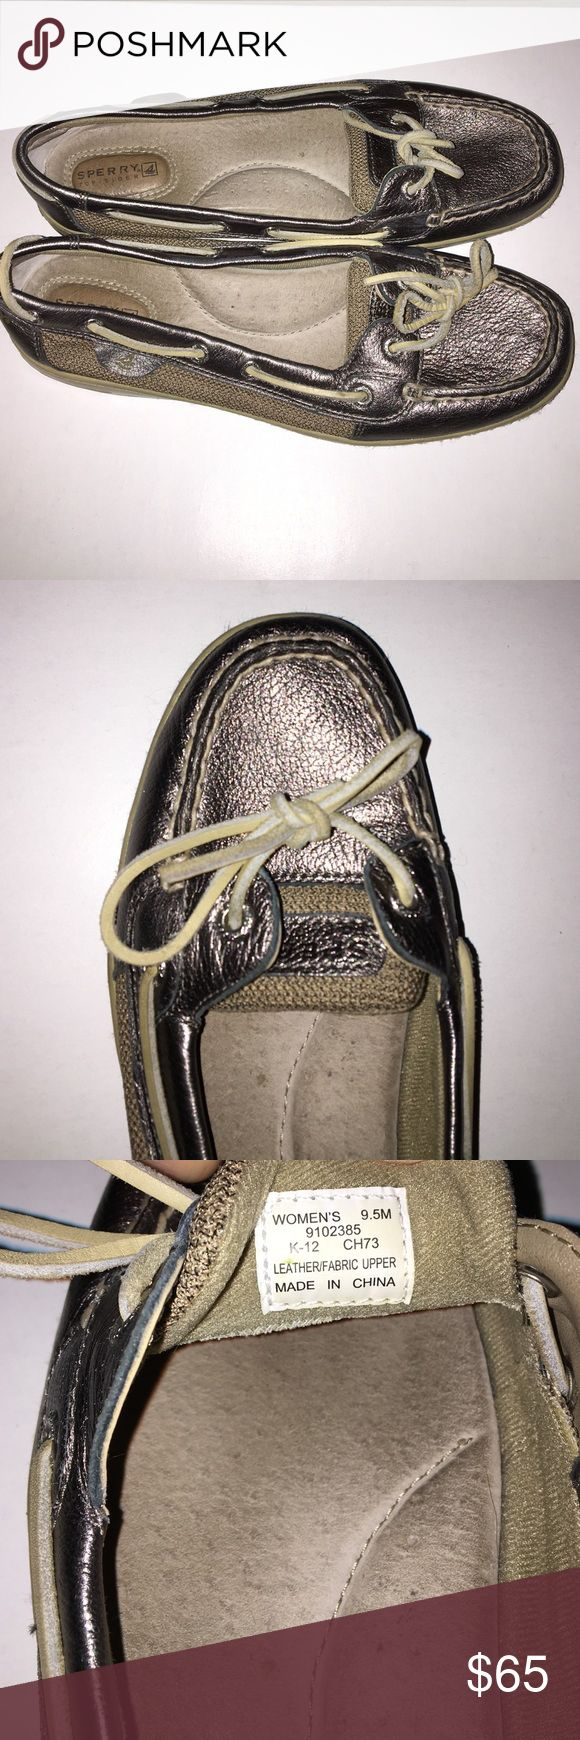 Sperry Top-Sider Women's Angelfish Pewter Metallic Sperry Top-Sider Women's Angelfish Pewter Metallic  Boat Shoe. Worn a couple times. Good condition Women's U.S. Size 9.5 Sperry Top-Sider Shoes Flats & Loafers